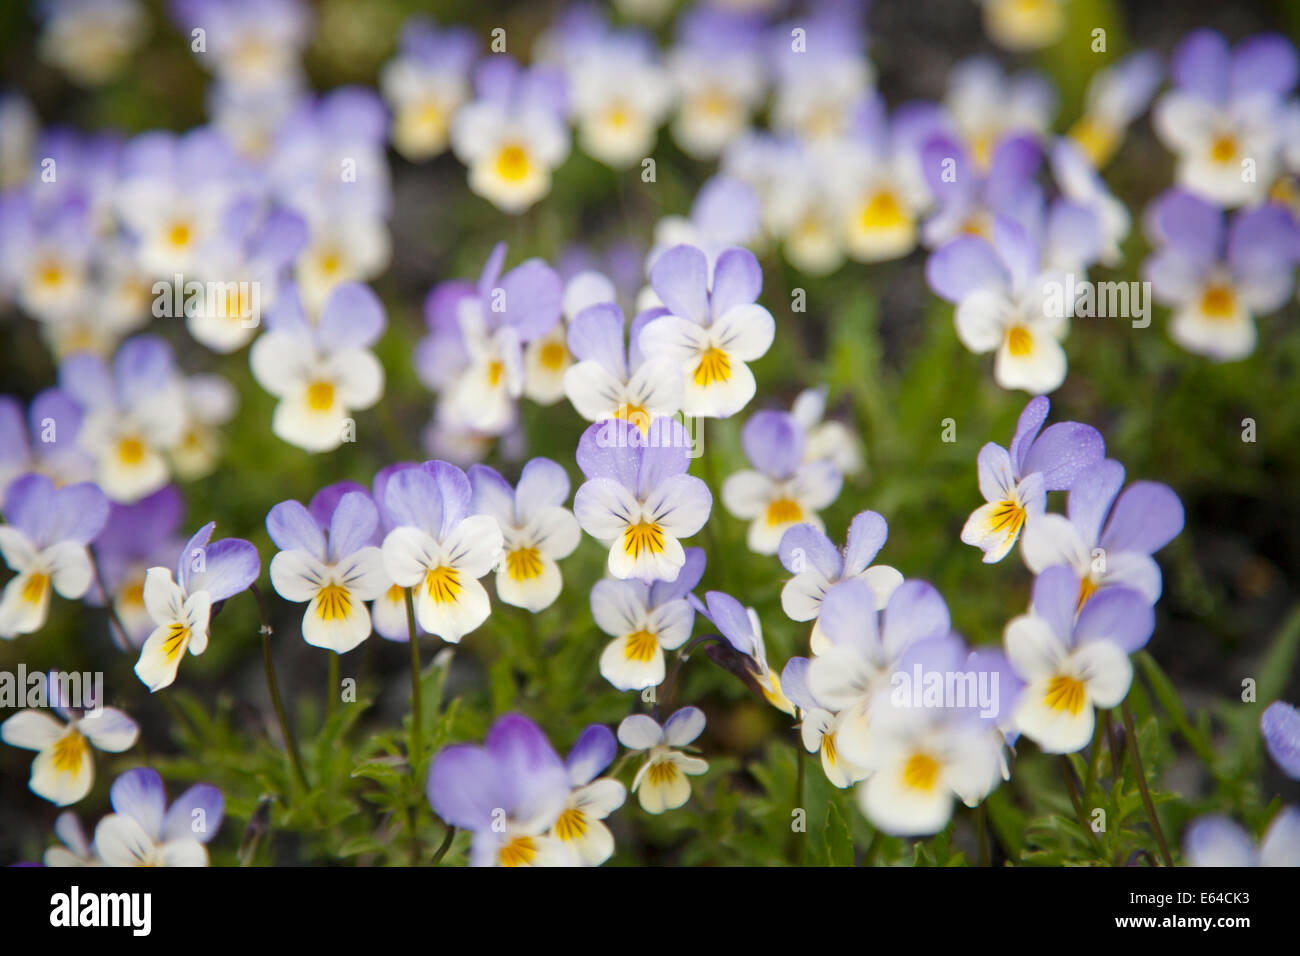 Wild Pansy Viola tricolor Iceland PL002235 - Stock Image